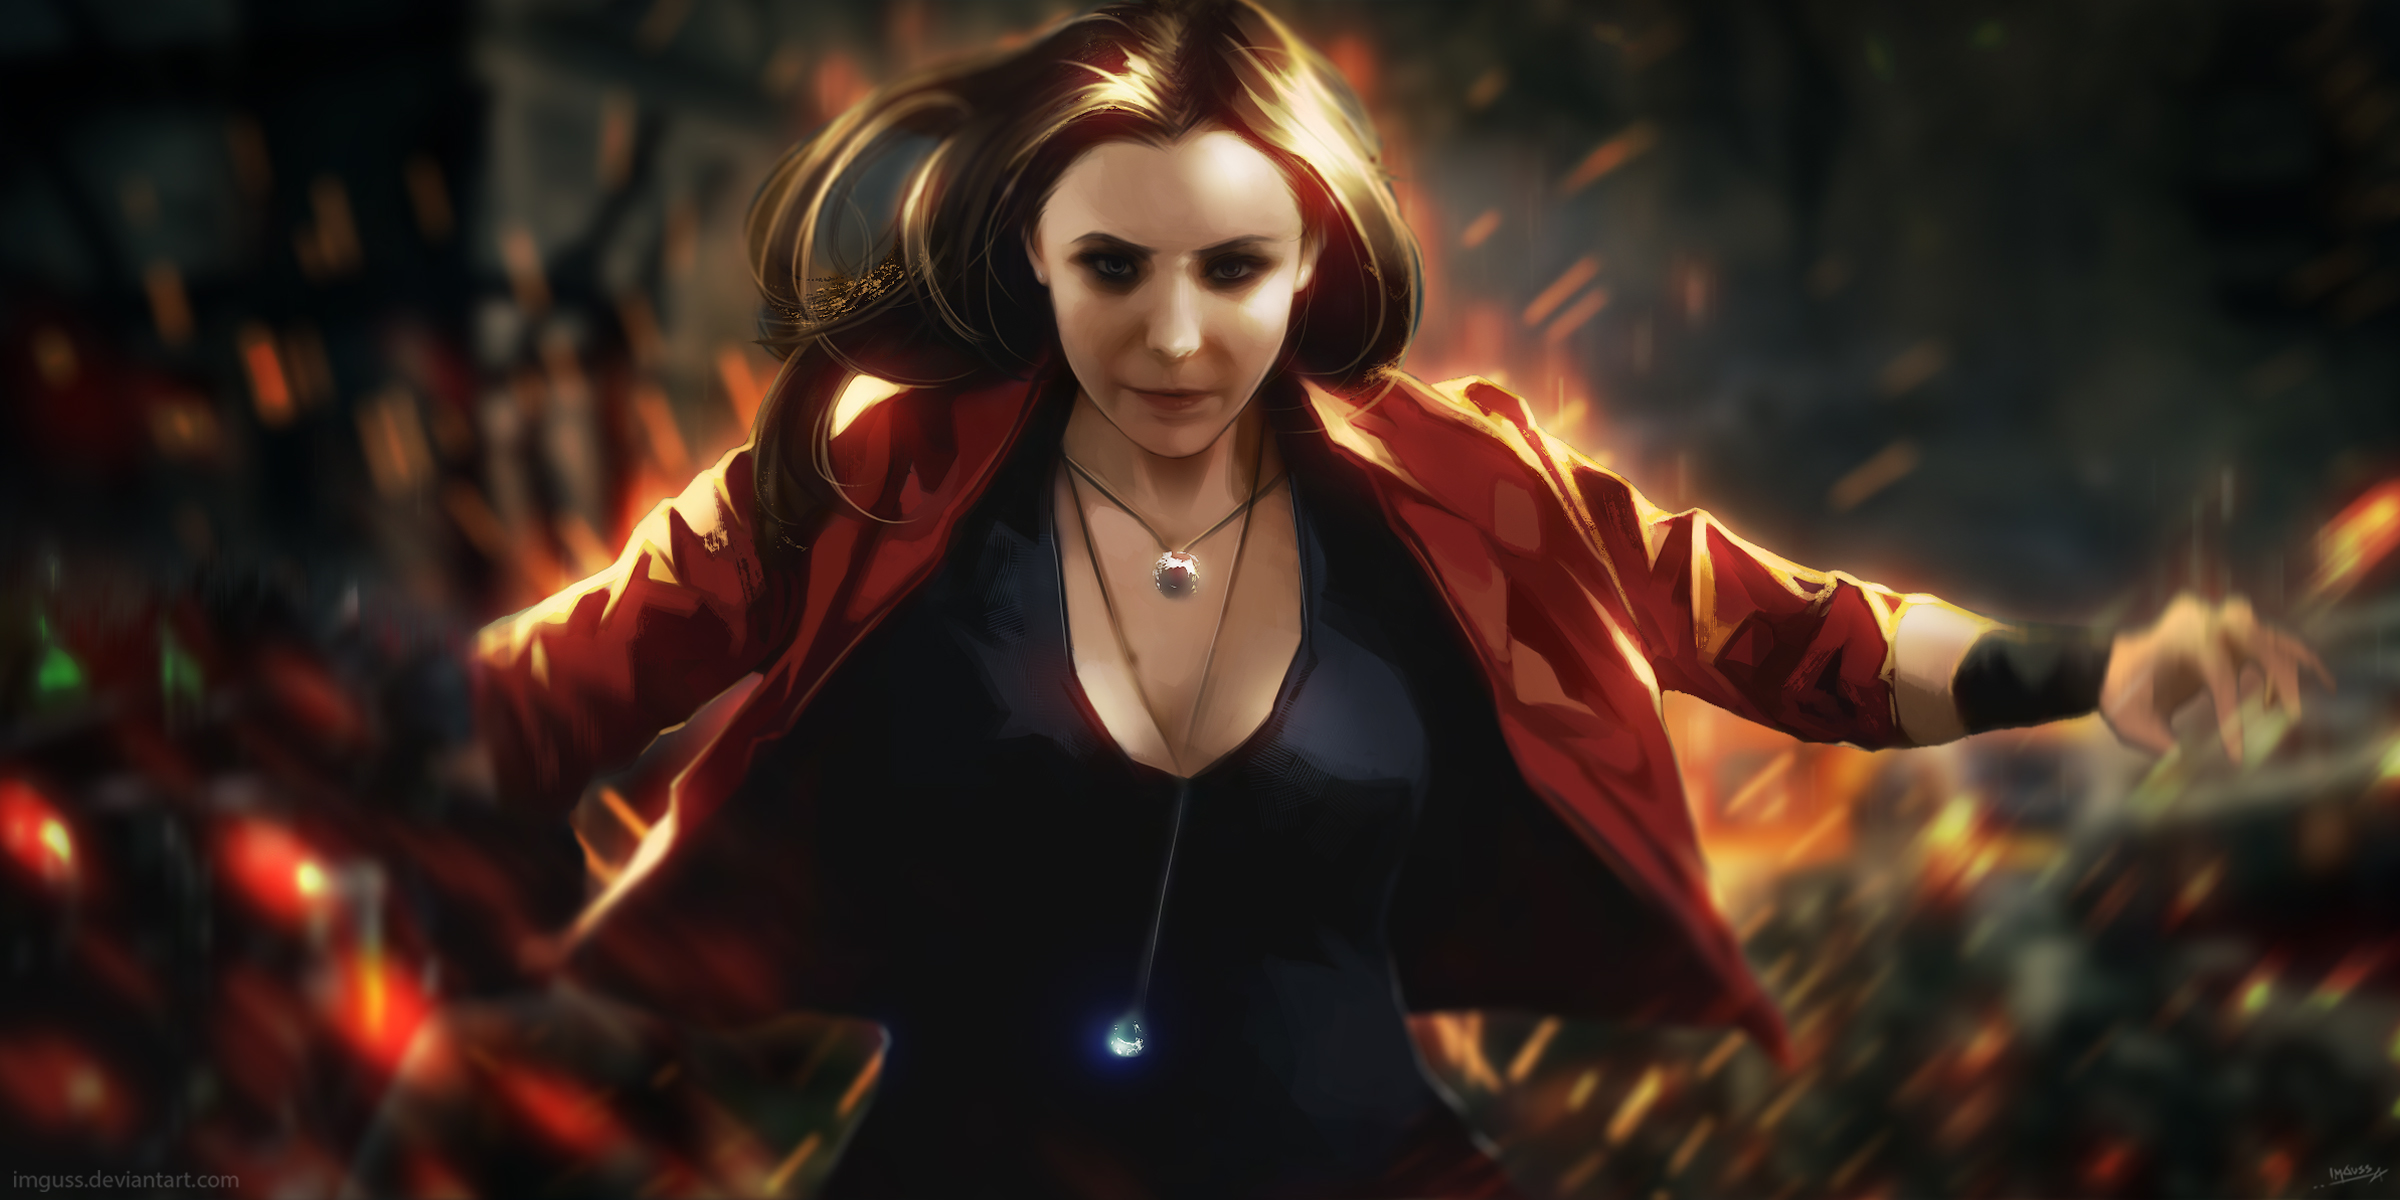 Scarlet Witch Artwork Hd Superheroes 4k Wallpapers Images Backgrounds Photos And Pictures